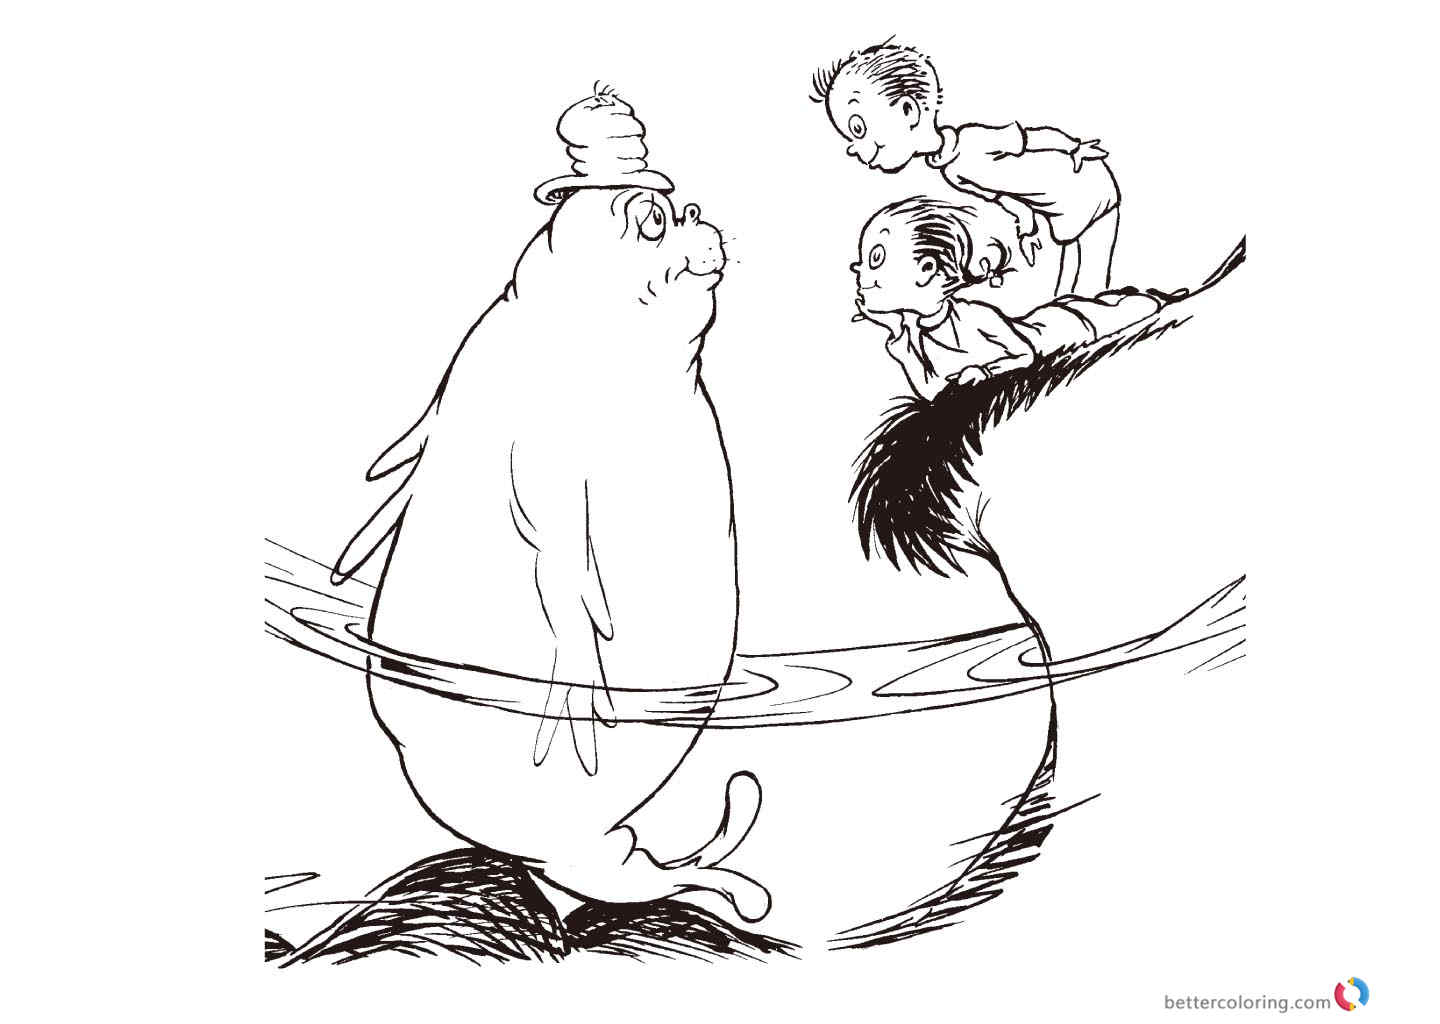 Dr Seuss Coloring Pages One Fish